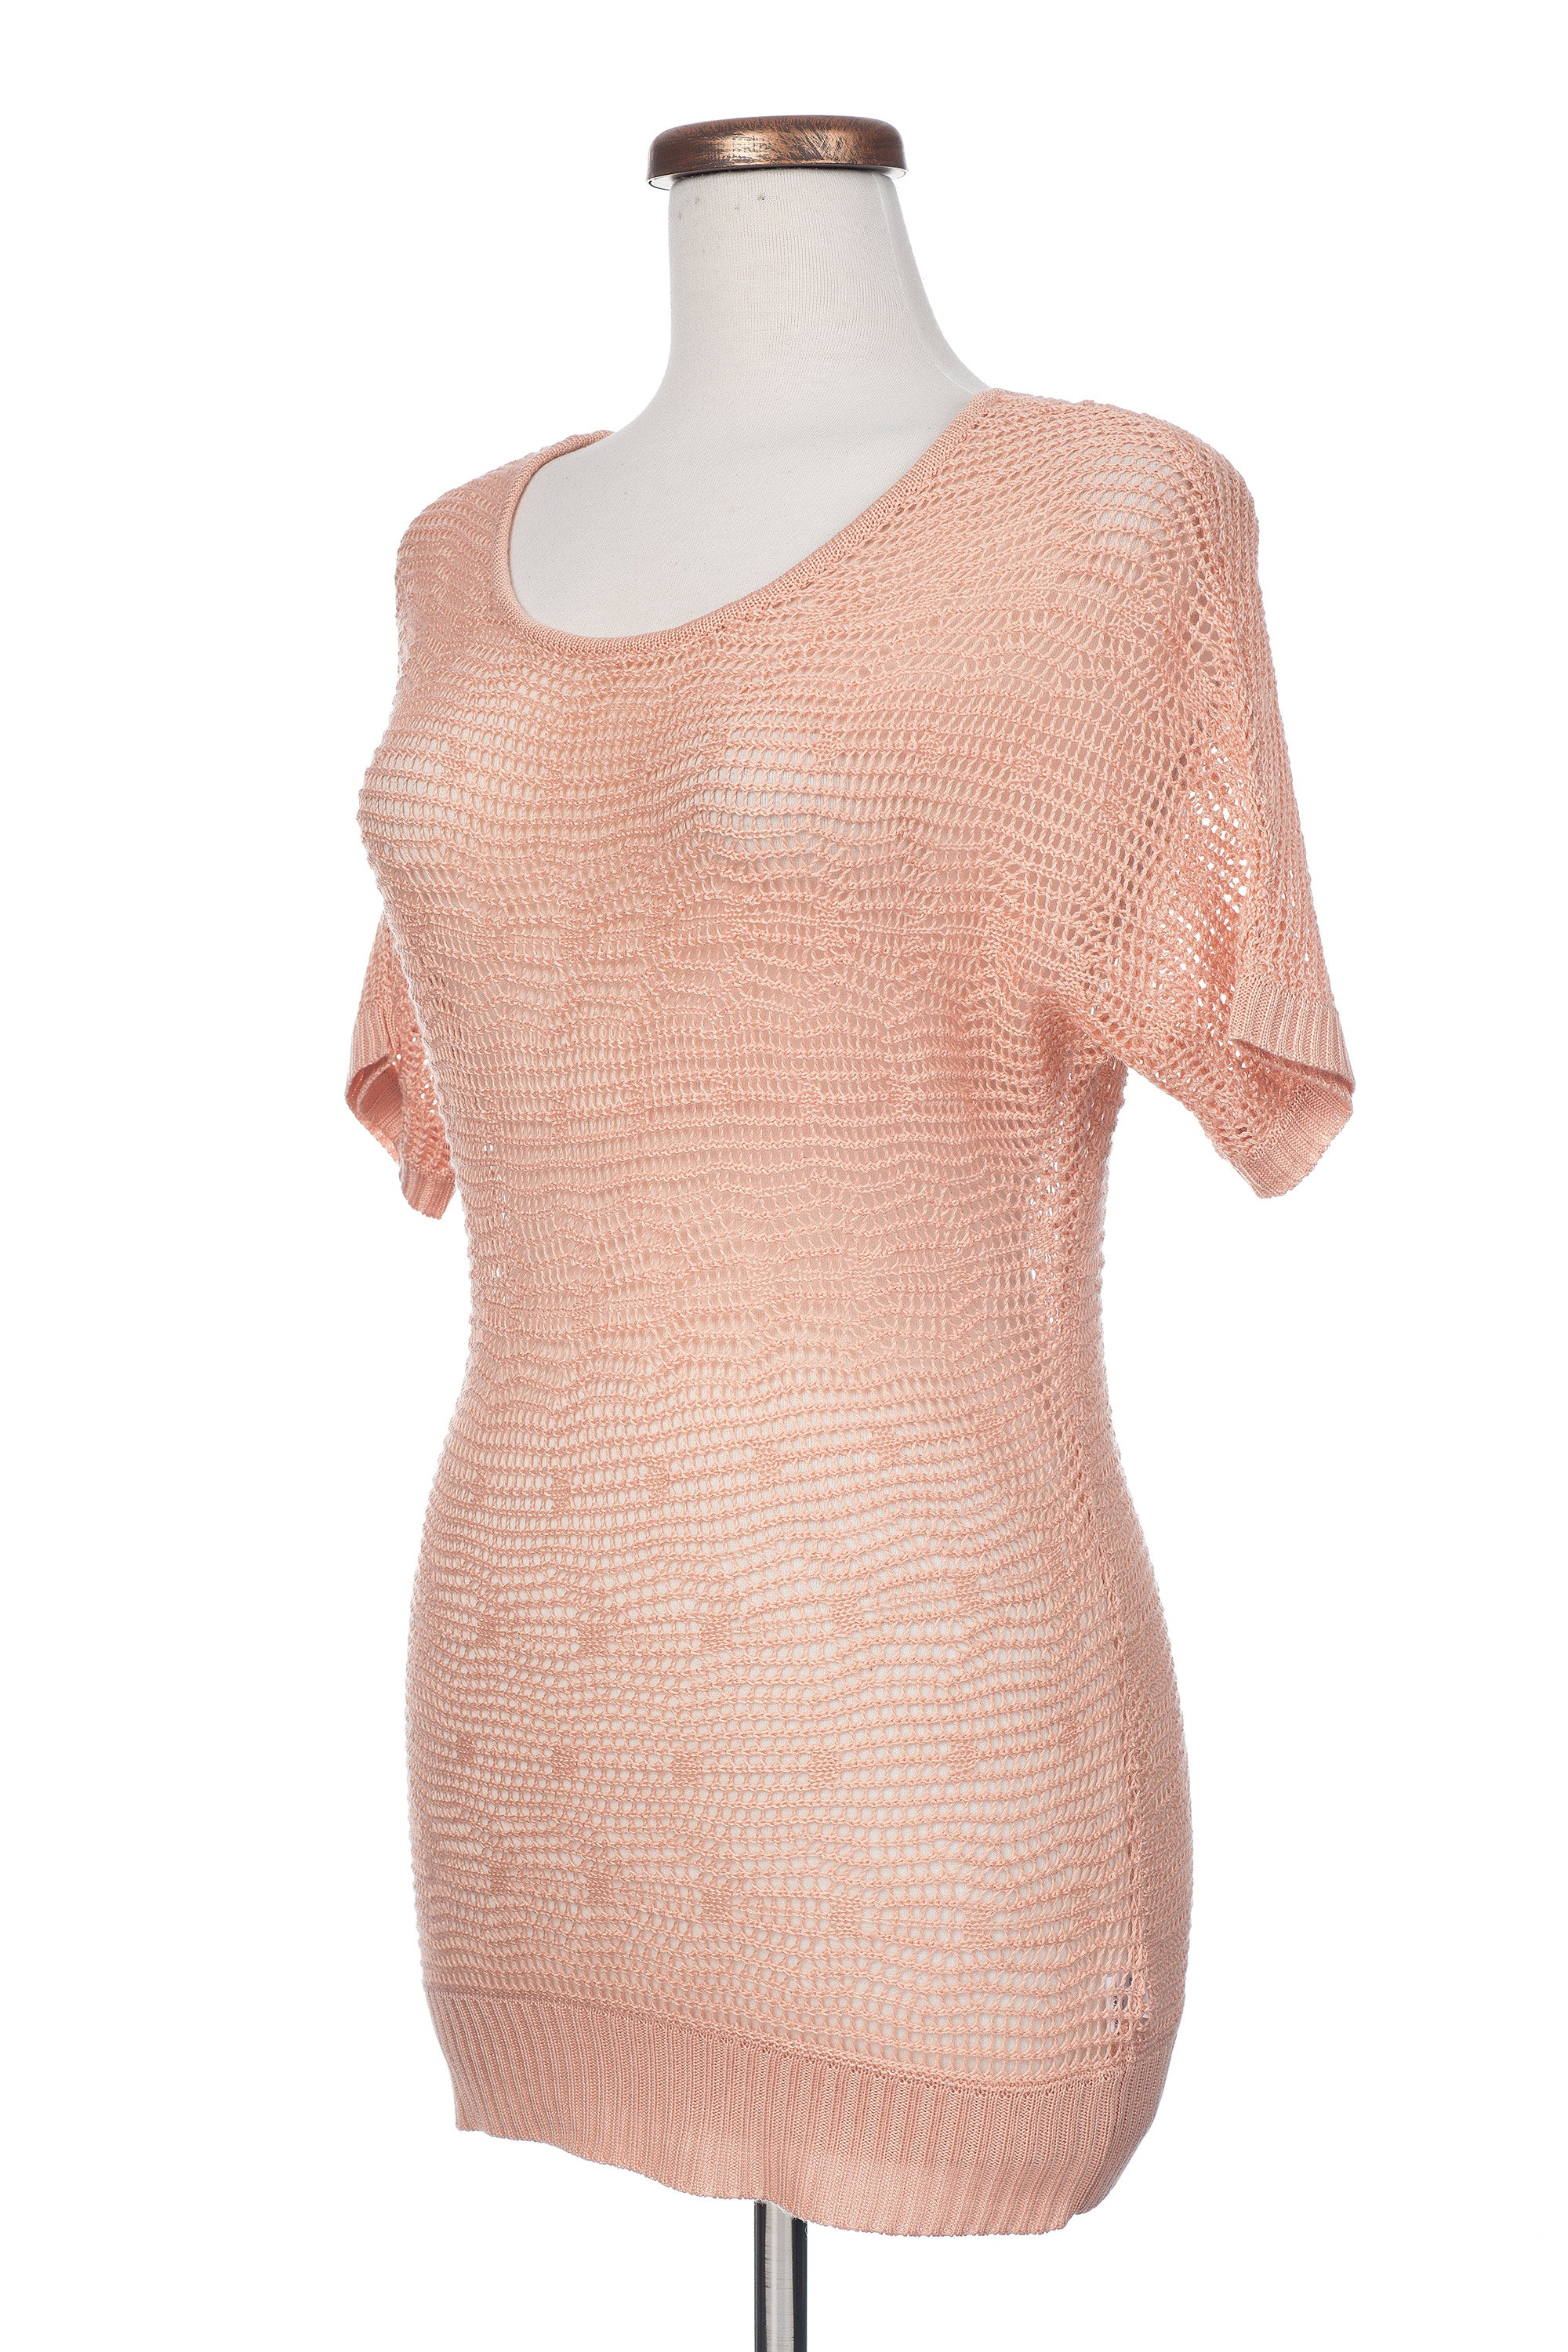 Type 3 Peach Passion Top